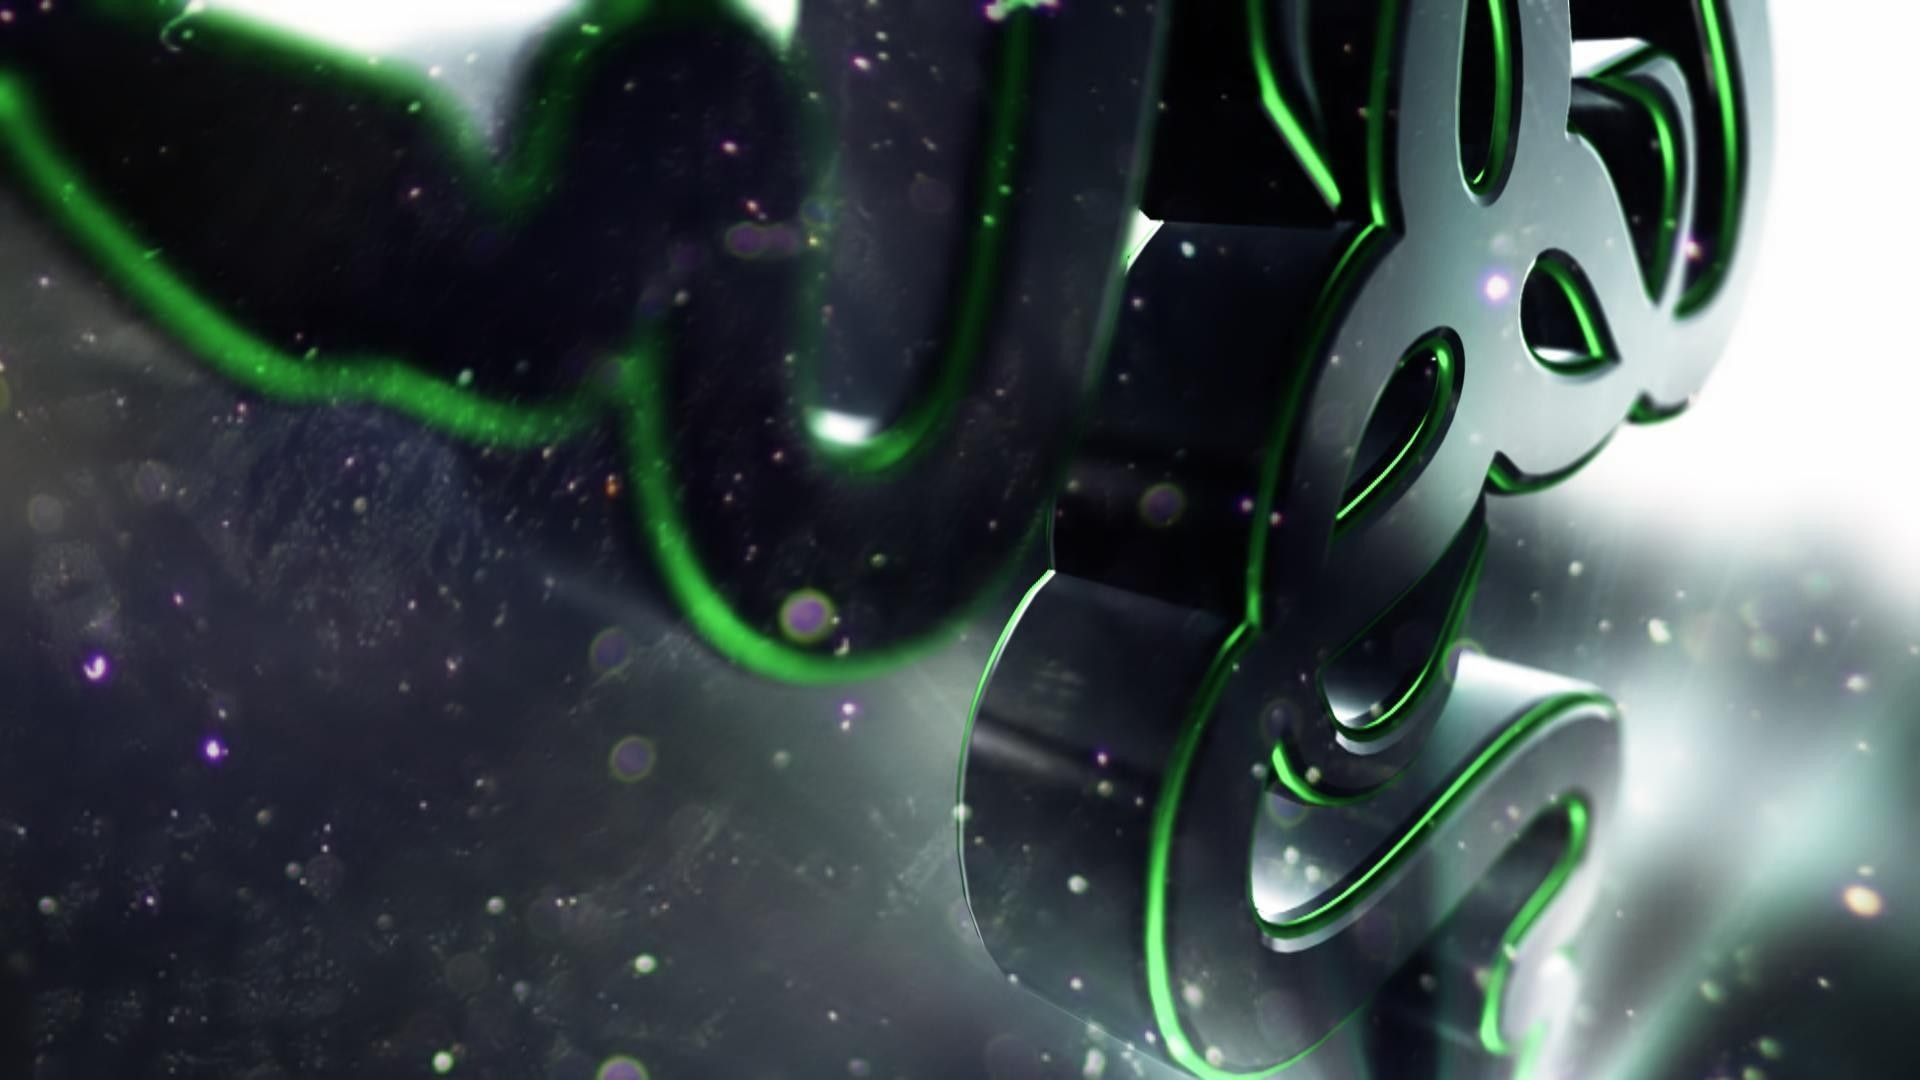 Wallpaper Razer Full HD